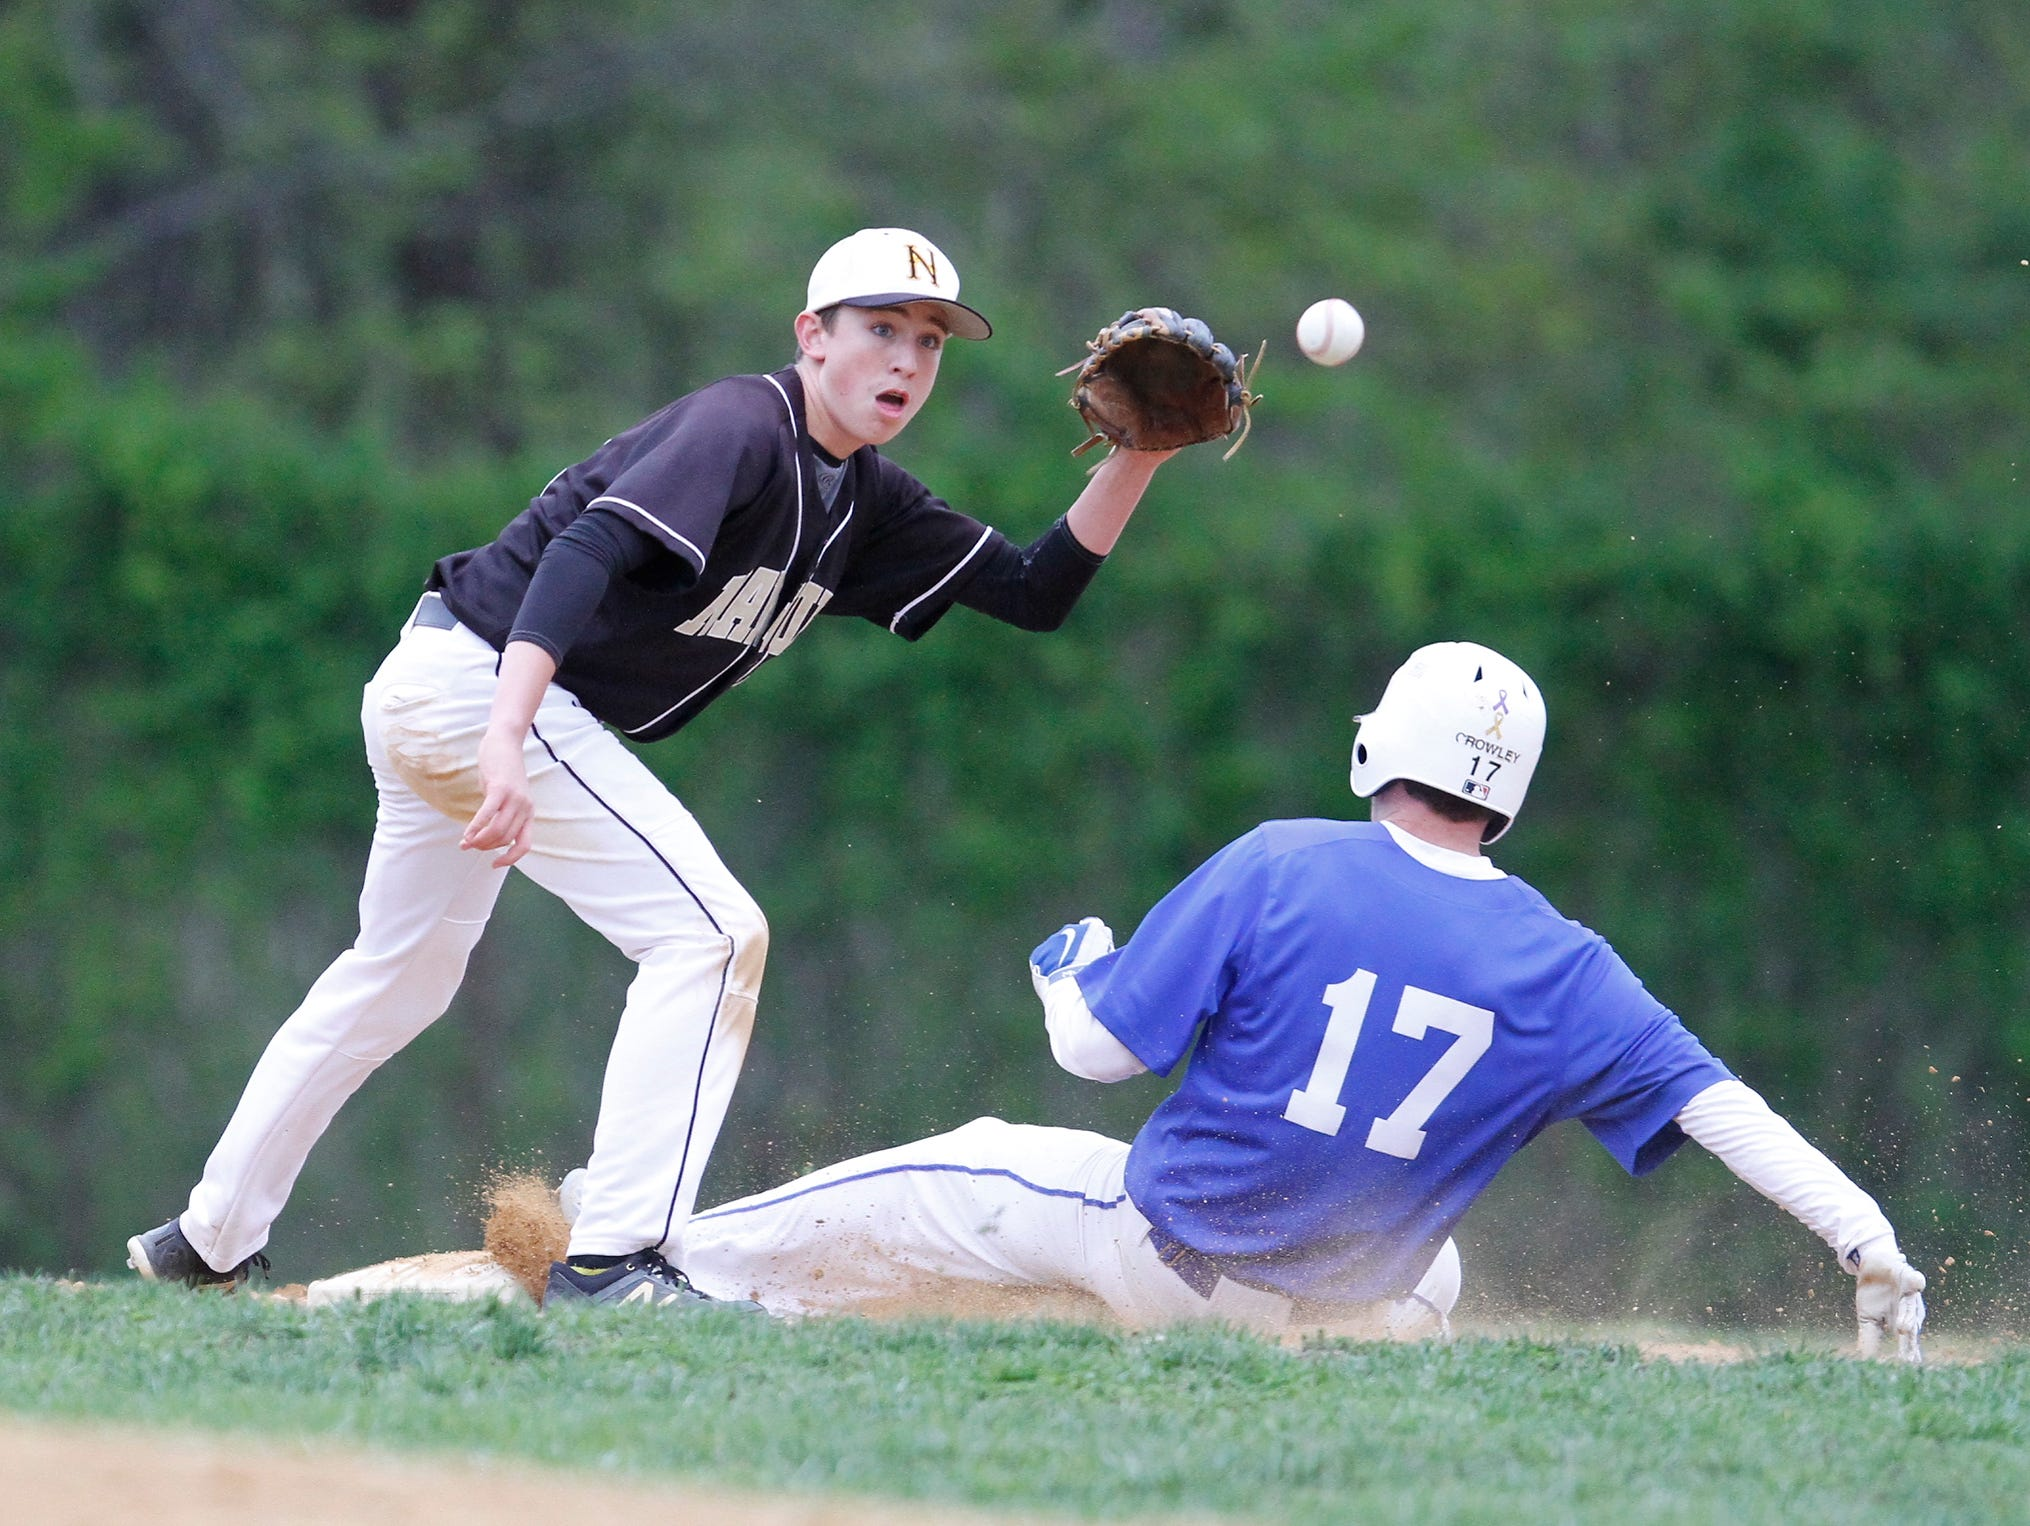 Nanuet shortstop Aiden Gallagher (10) pulls in a late throw as Hendrick Hudson base runner Mike Crowley (17) slides in safe at second during a baseball game at Sunset Park in Montrose on Thursday, May 05, 2016. Hendrick Hudson won 6-2.